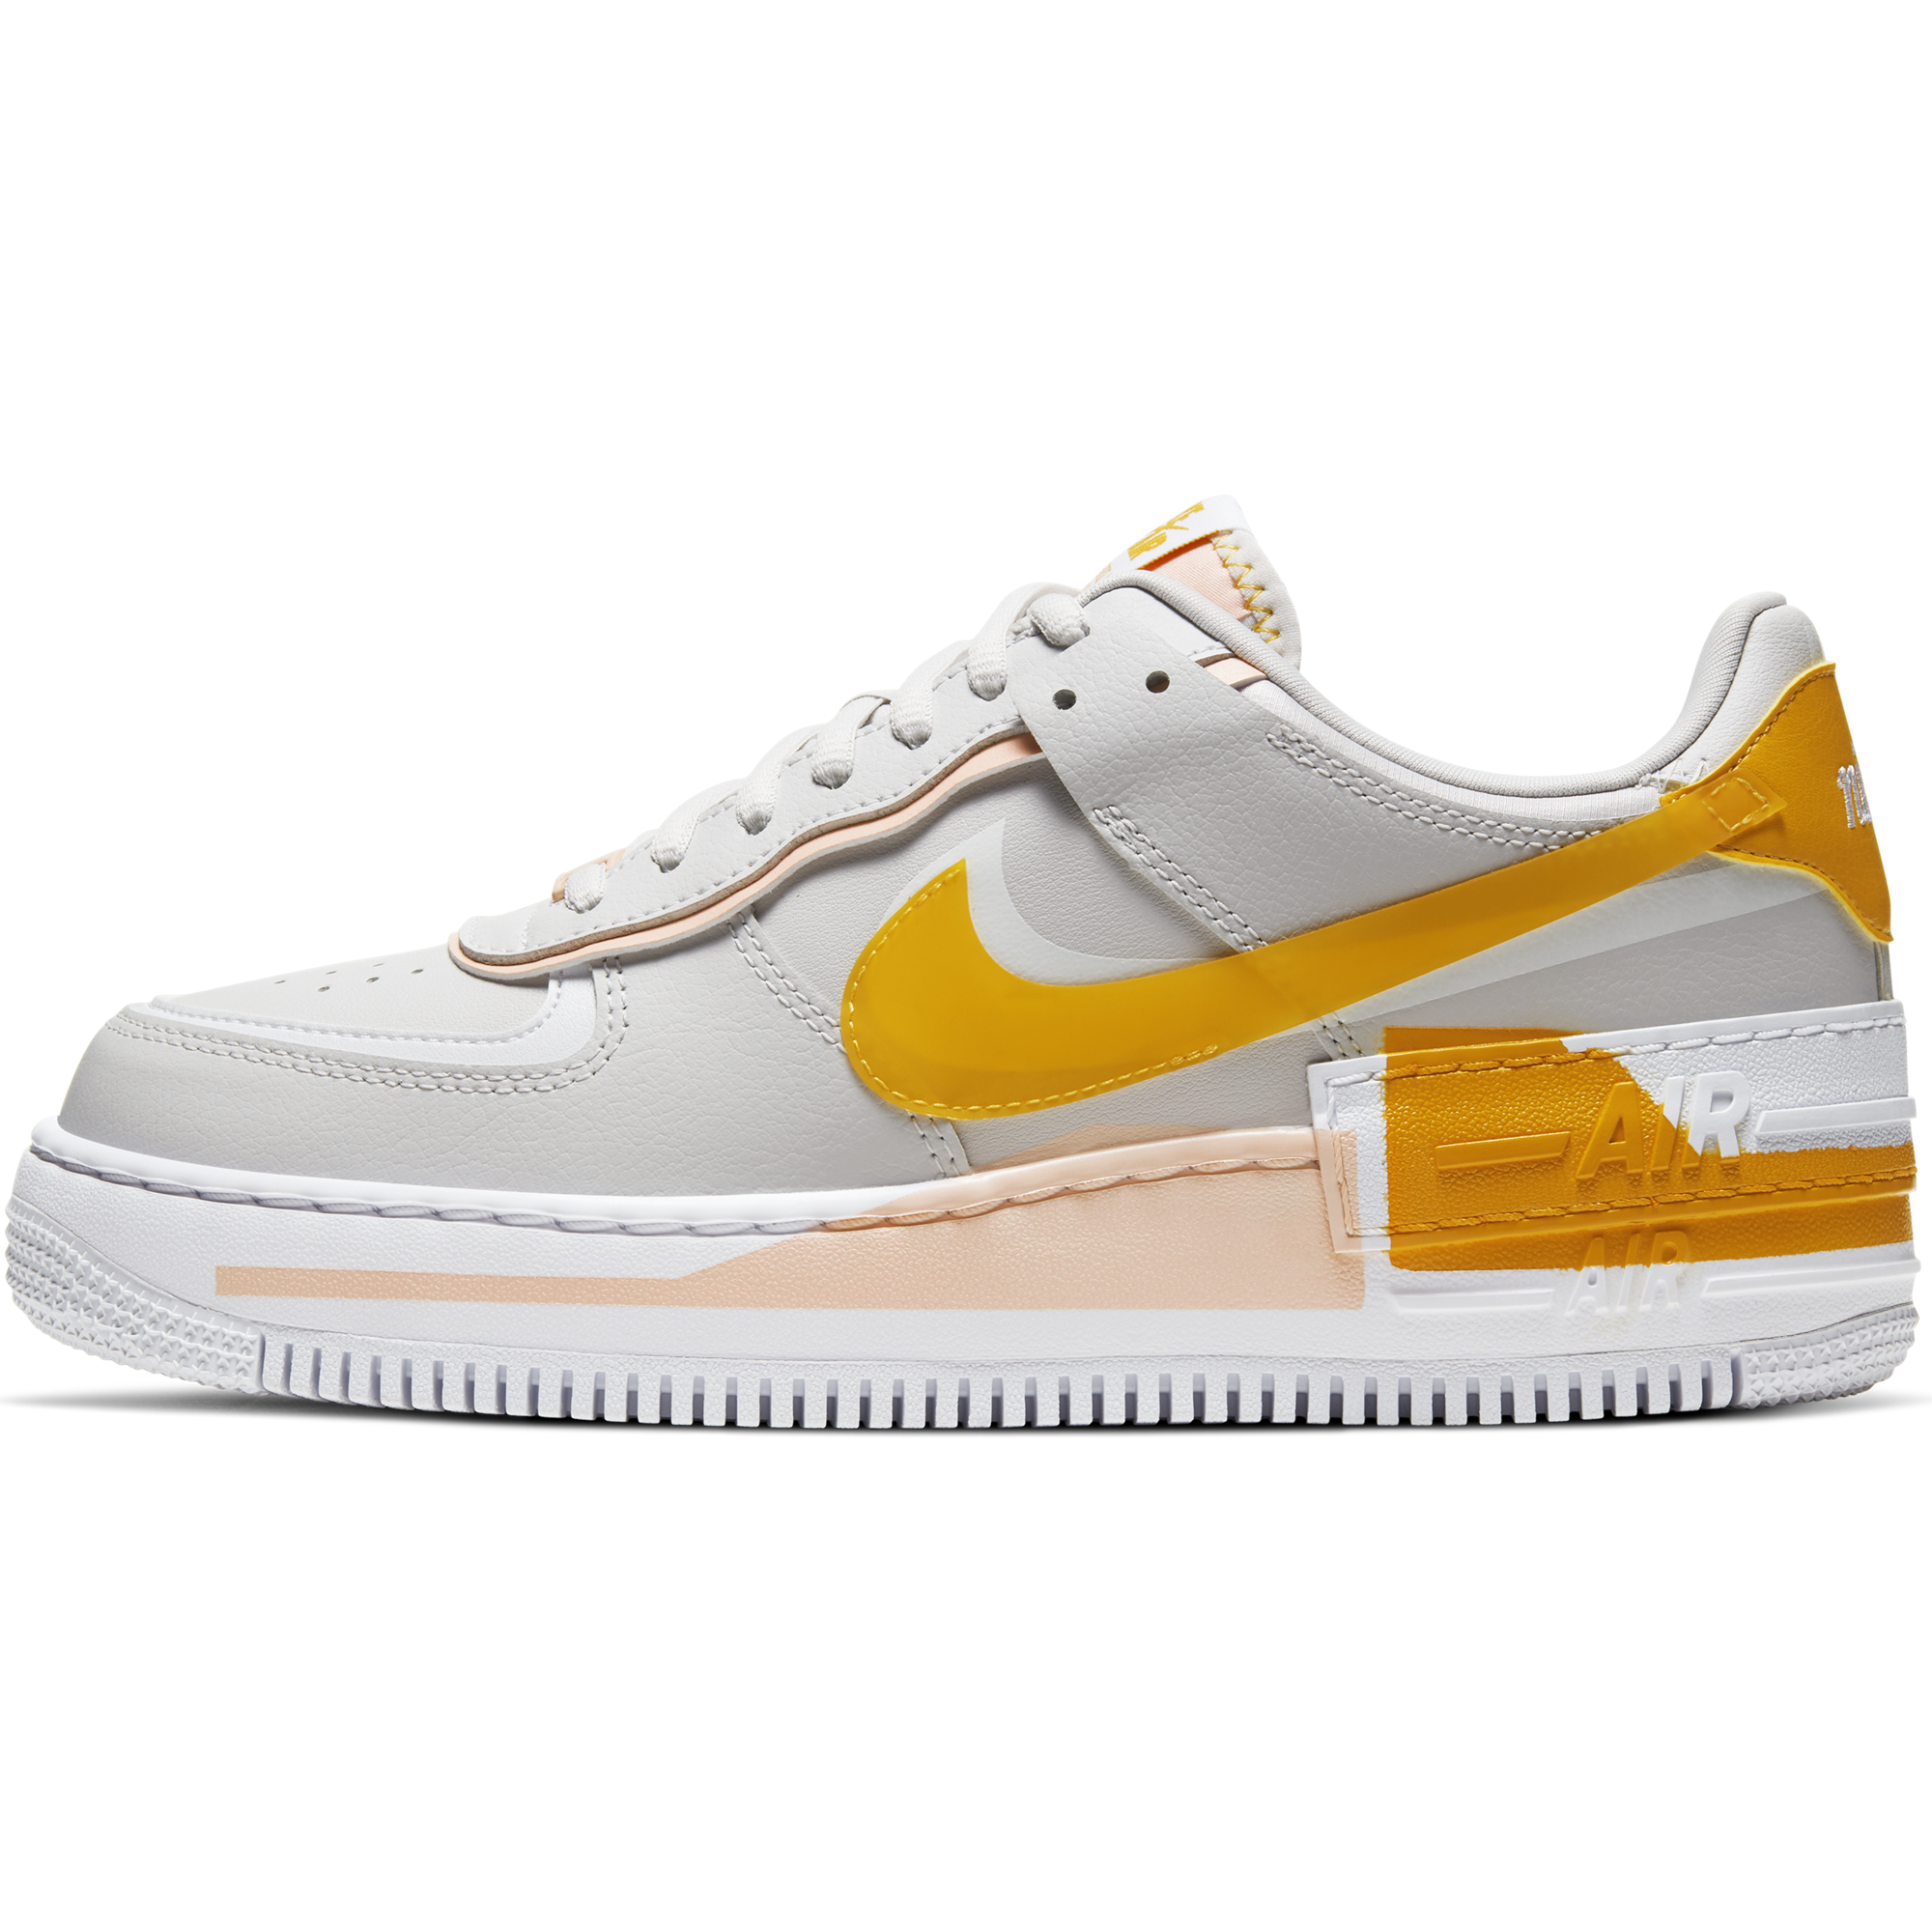 Women S Nike Air Force 1 Shadow Se Vast Grey Pollen Rise Washed Coral Trilogy Merch Ph This iteration comes in a vast grey colourway with retro orange accents. women s nike air force 1 shadow se vast grey pollen rise washed coral cq9503 001